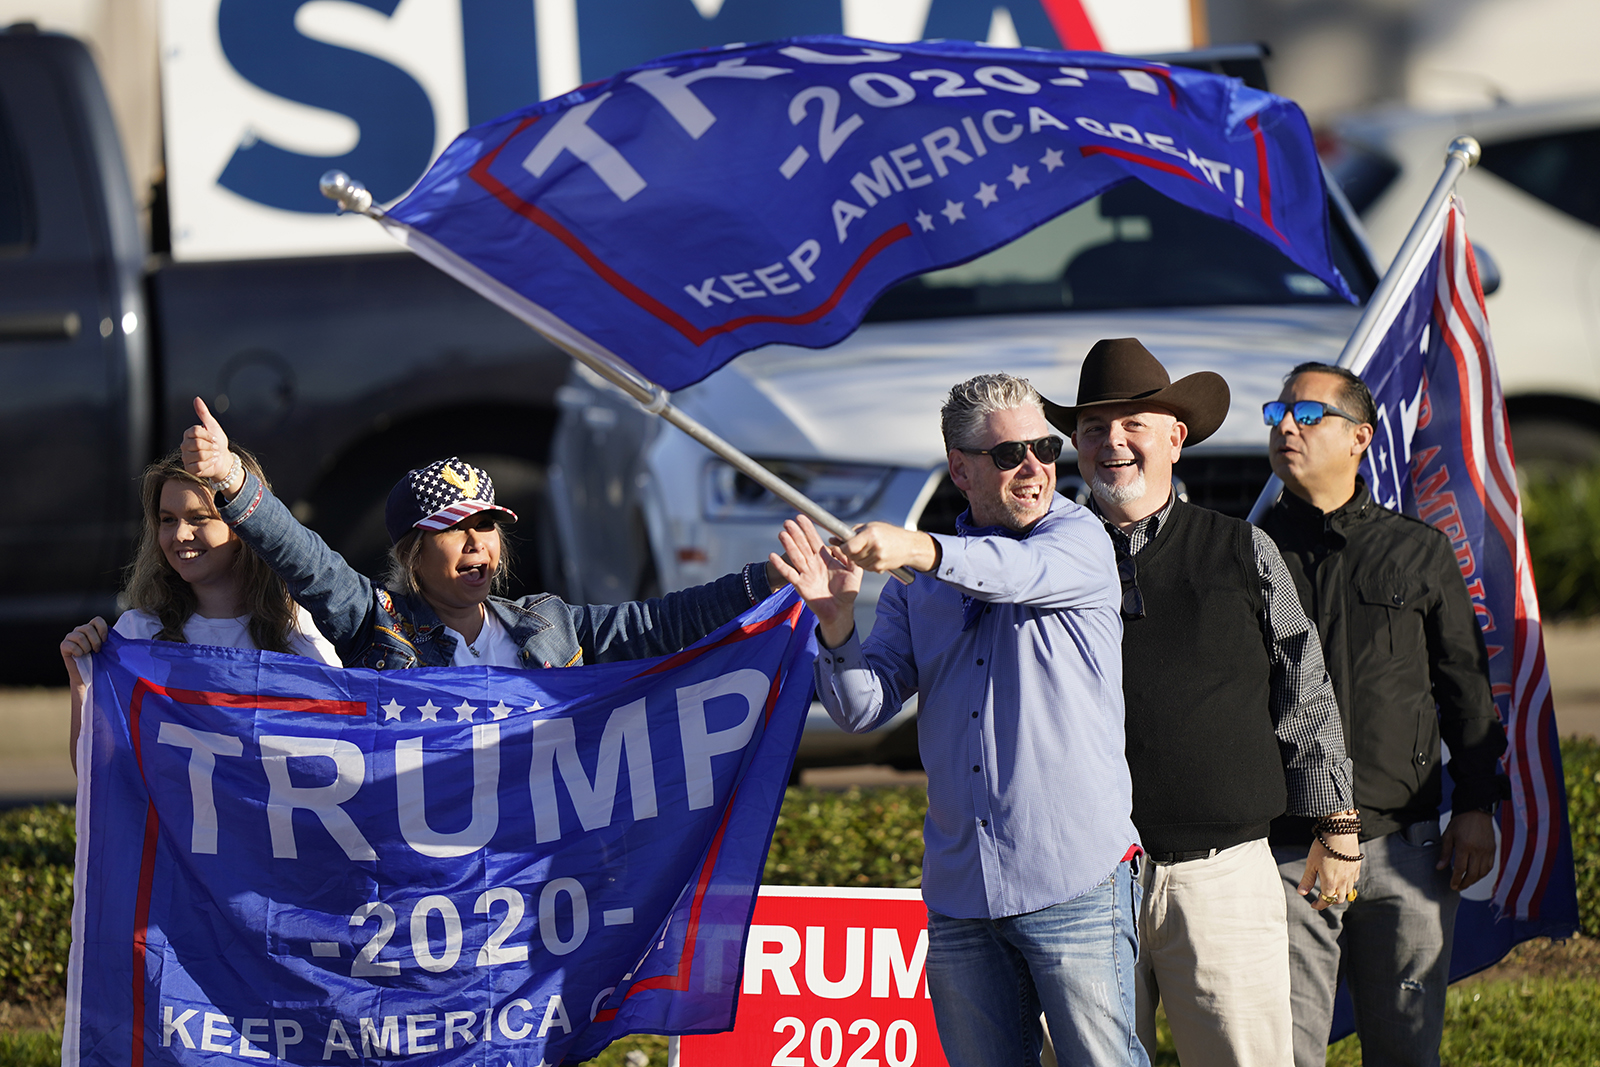 Supporters of President Trump cheer as passing cars honk their horns near a polling location on Election Day, in Houston.